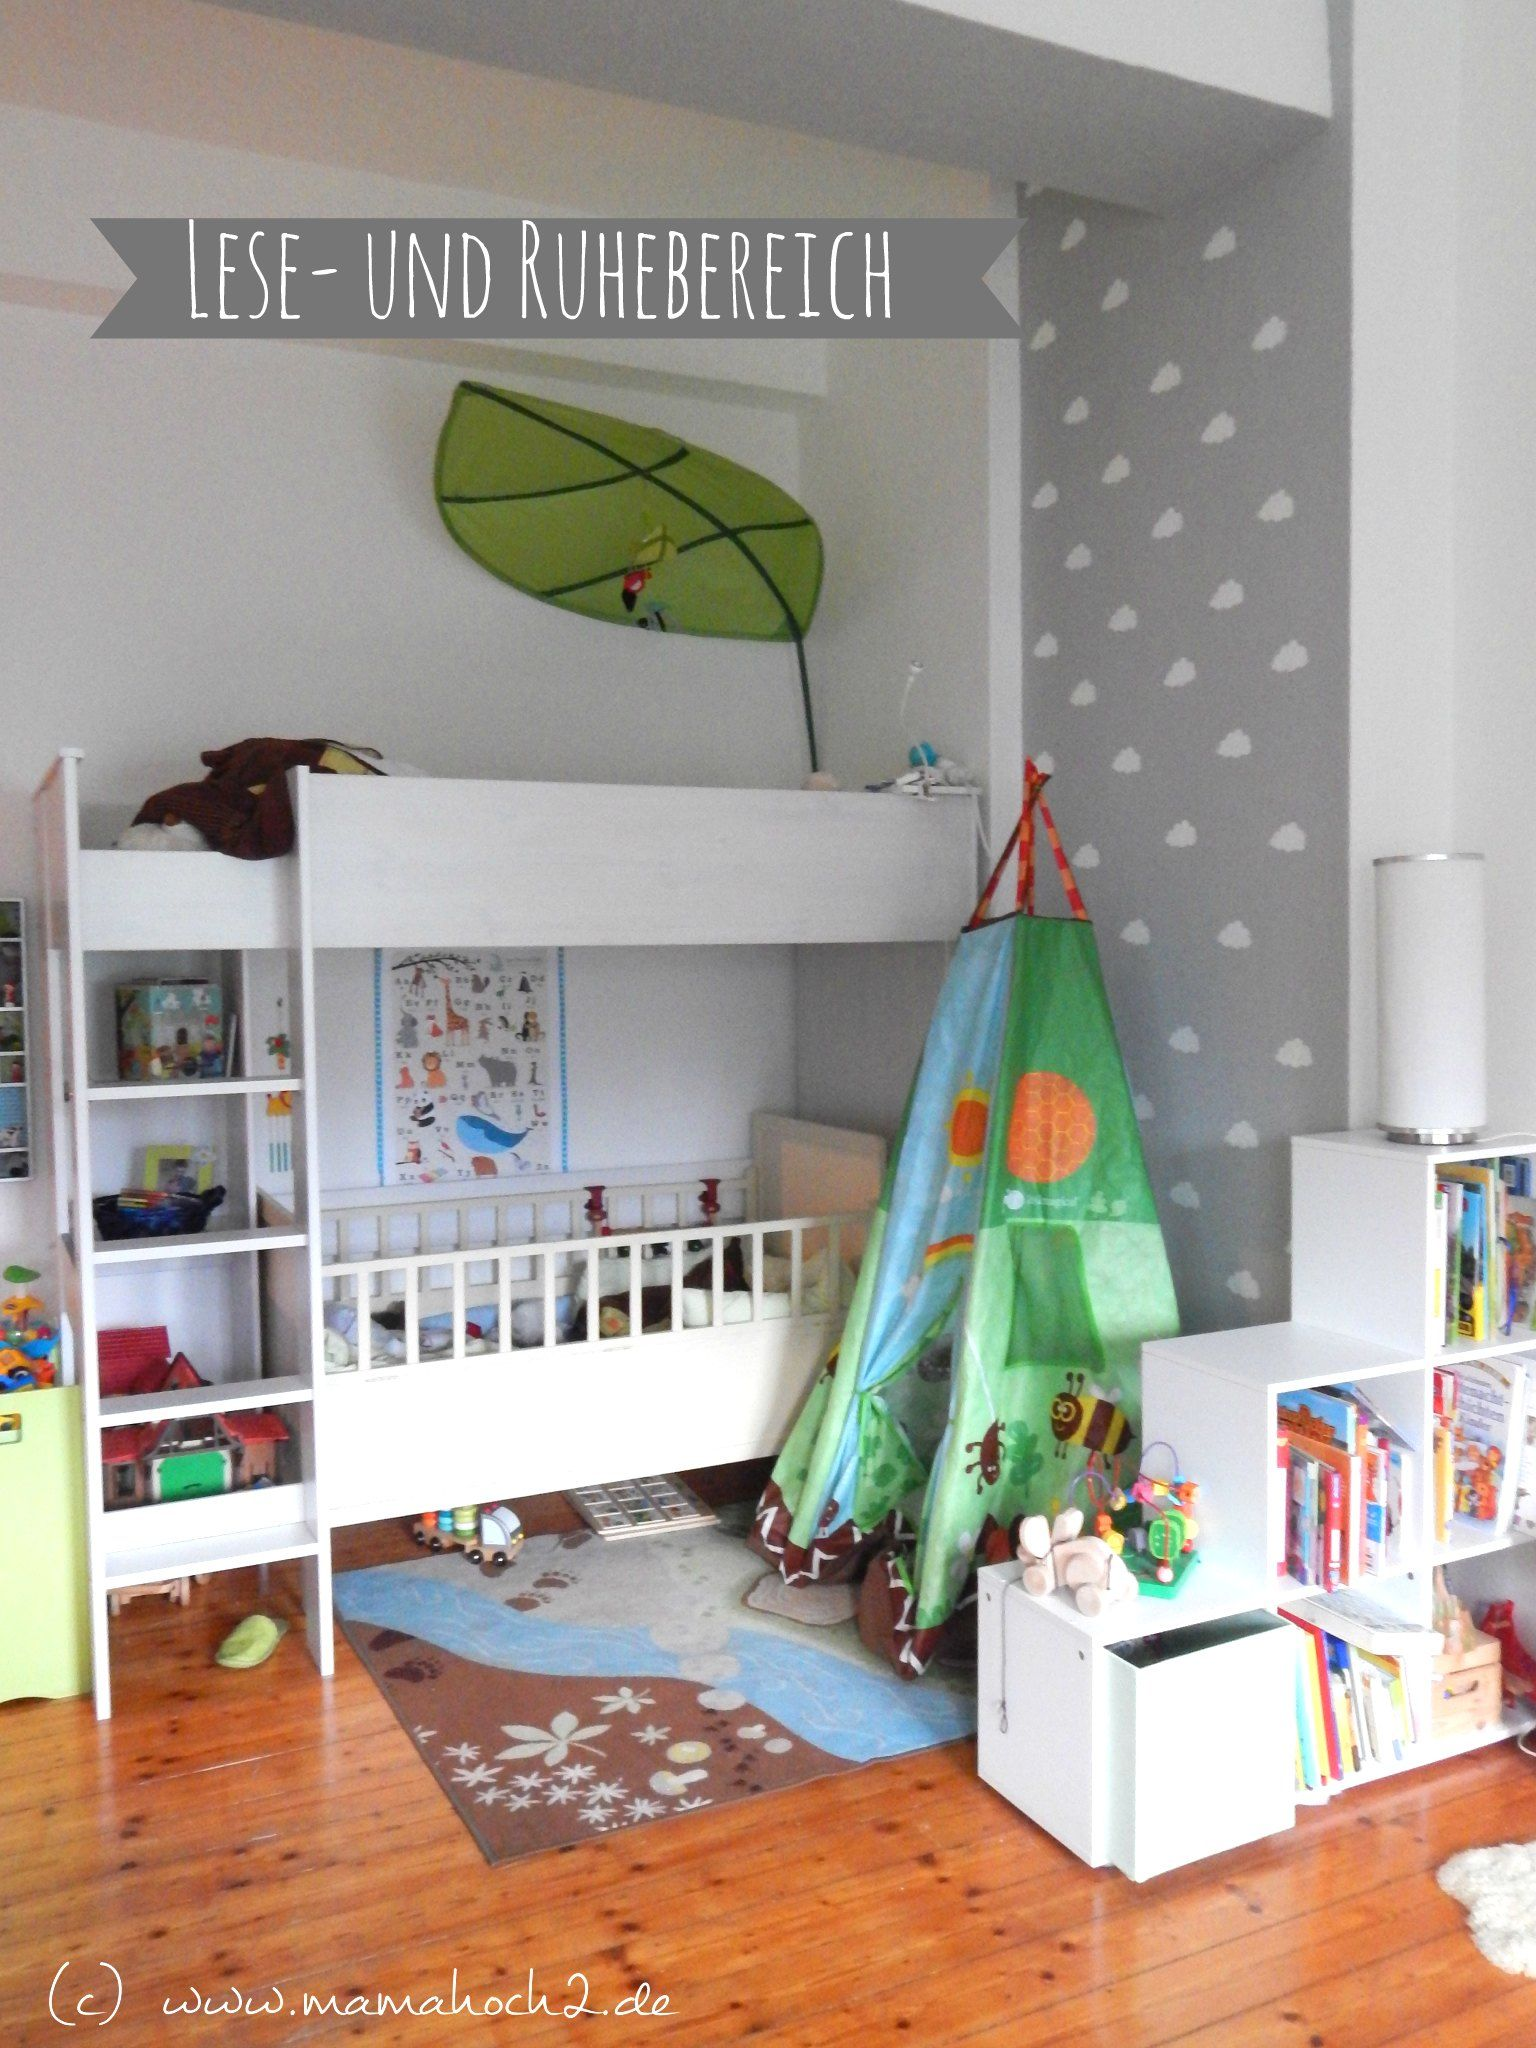 kinderzimmer f r zwei lausebengel kinderzimmerideen kinderzimmer kinderzimmer ideen und. Black Bedroom Furniture Sets. Home Design Ideas